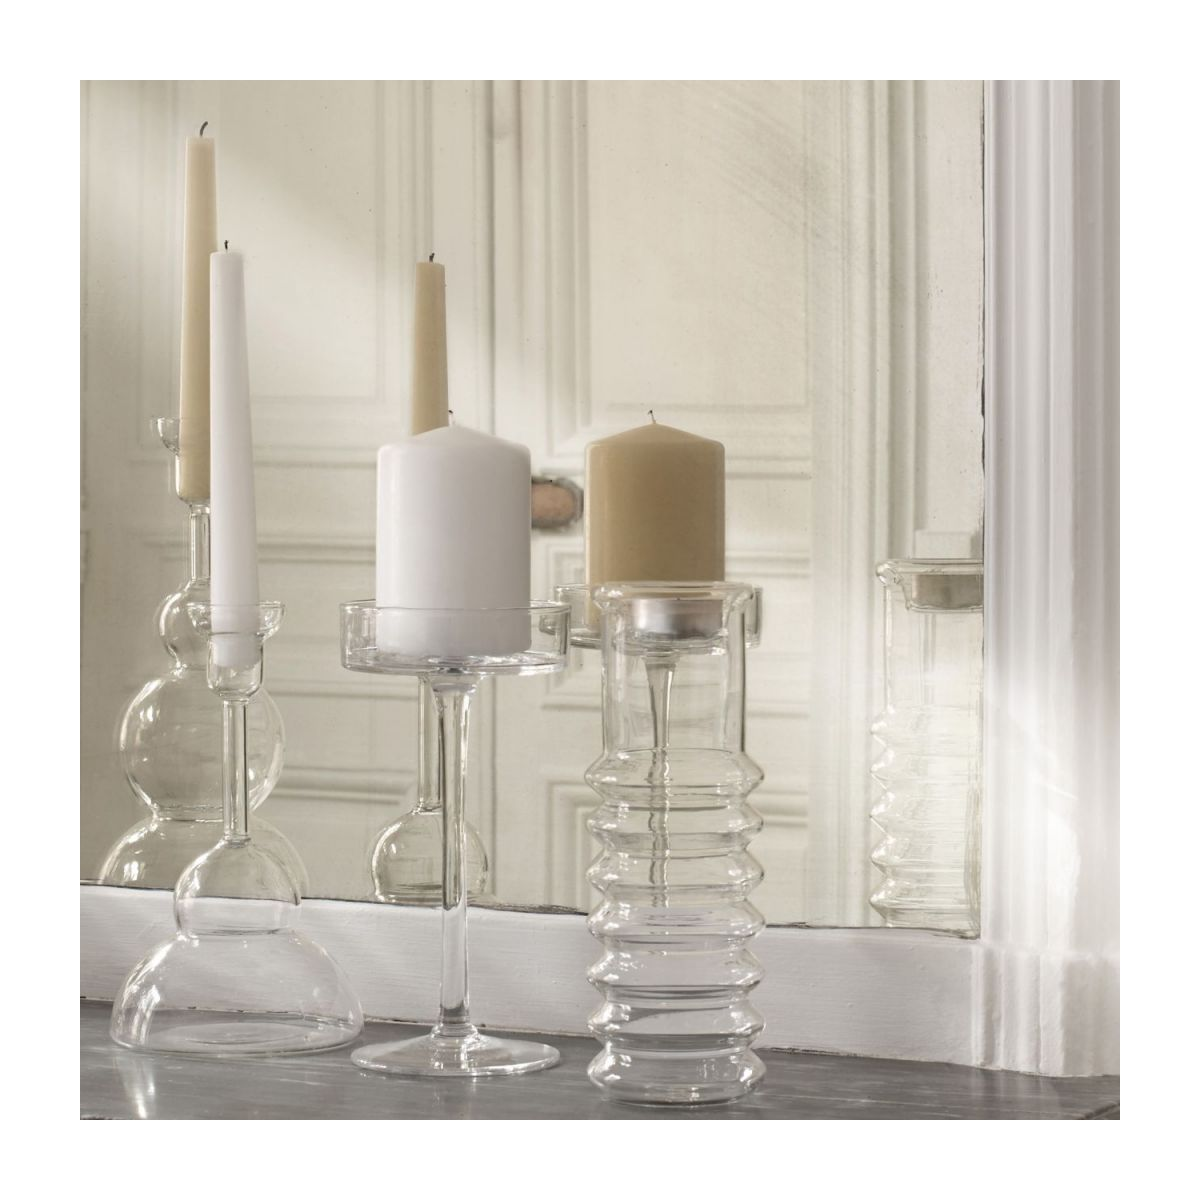 Small glass candlestick n°3